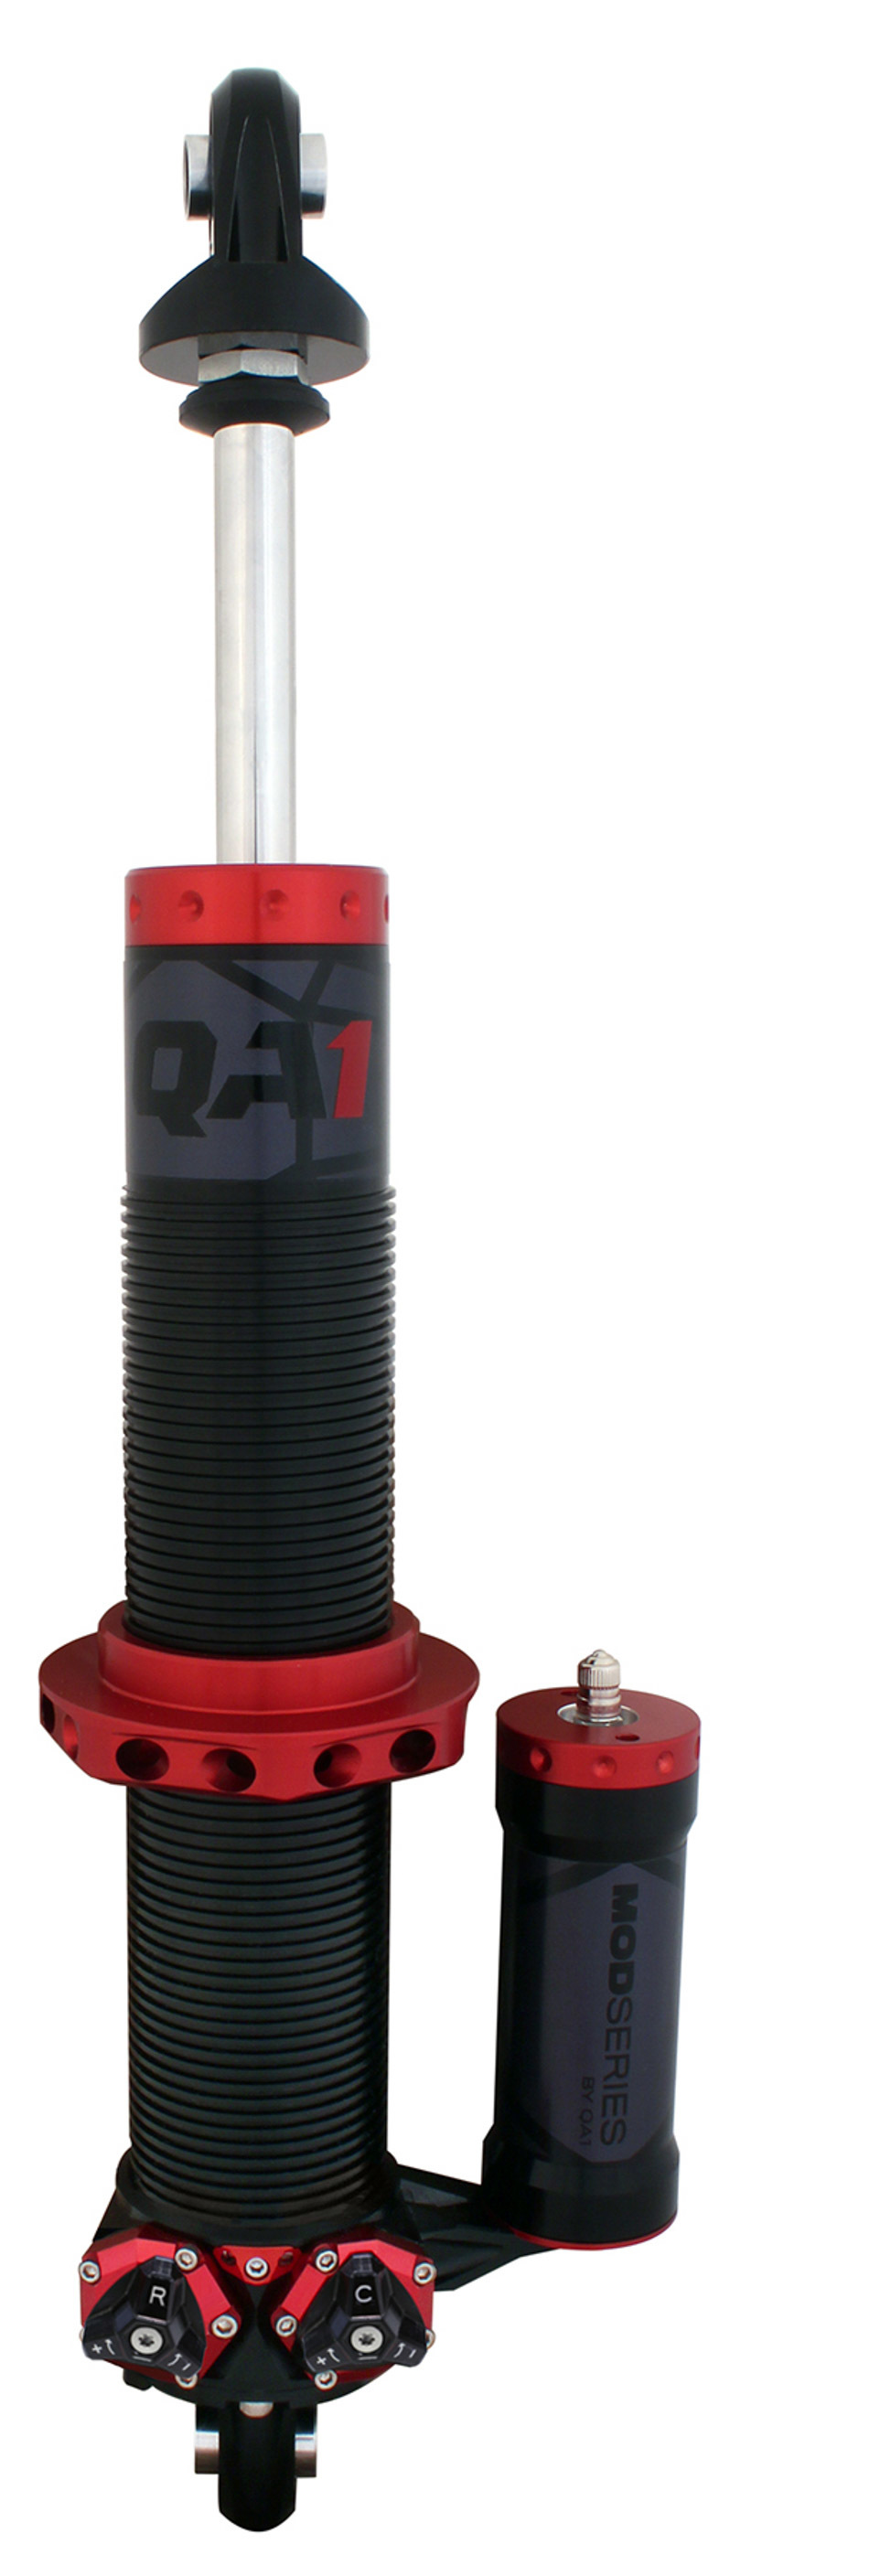 QA1 M511PR Shock, Mod Series, Twintube, 11.50 in Compressed / 16.88 in Extended, 2.00 in OD, Double Adjustable, Aluminum, Black Anodize, Each